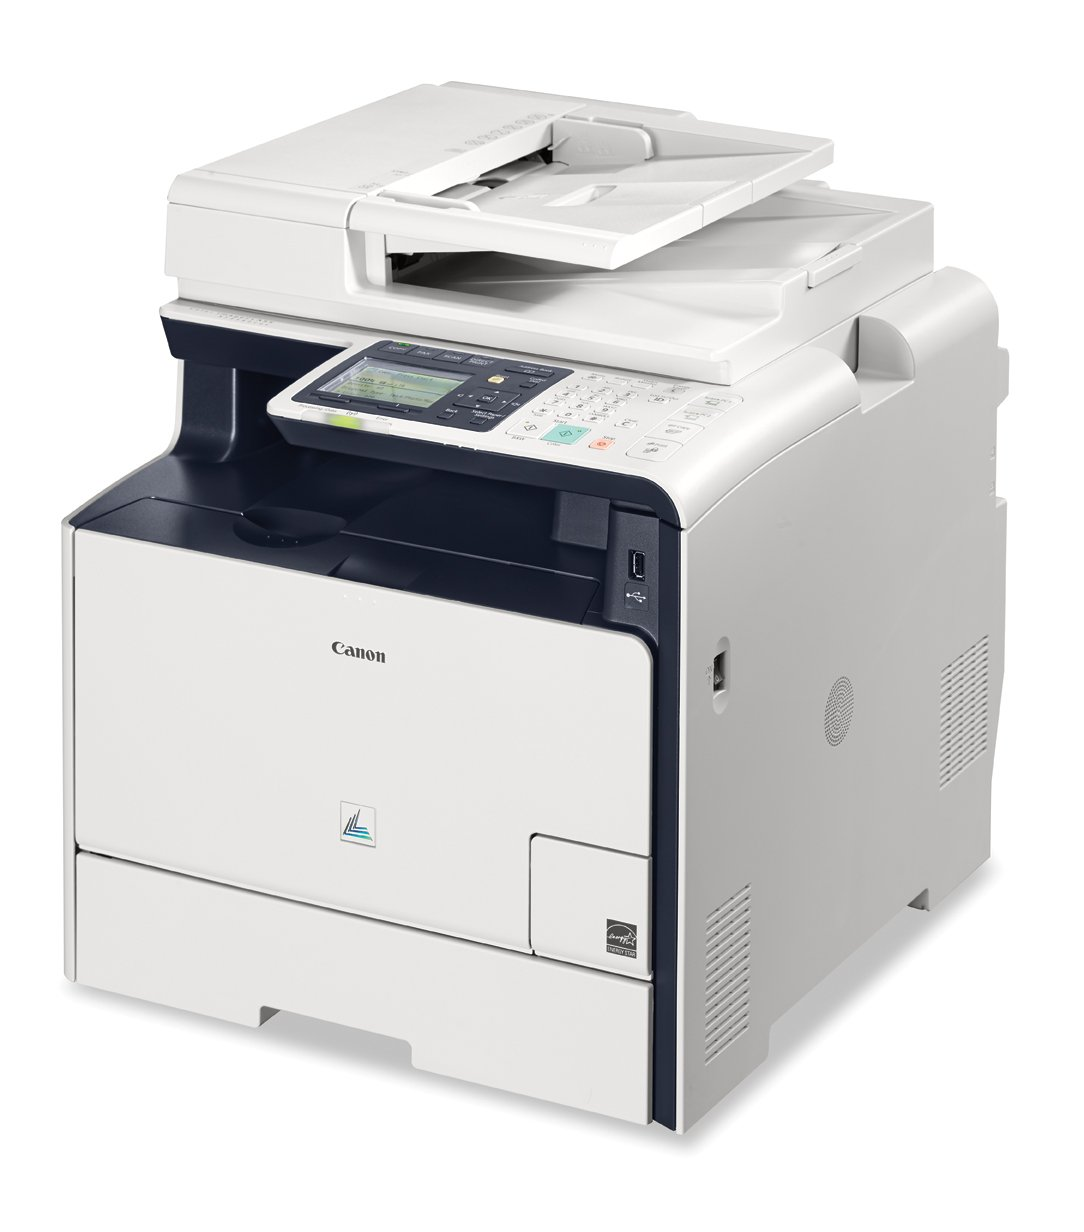 Amazon.com: Canon Color imageCLASS MF8580Cdw Wireless All-in-One Laser  Printer (Discontinued By Manufacturer): Electronics